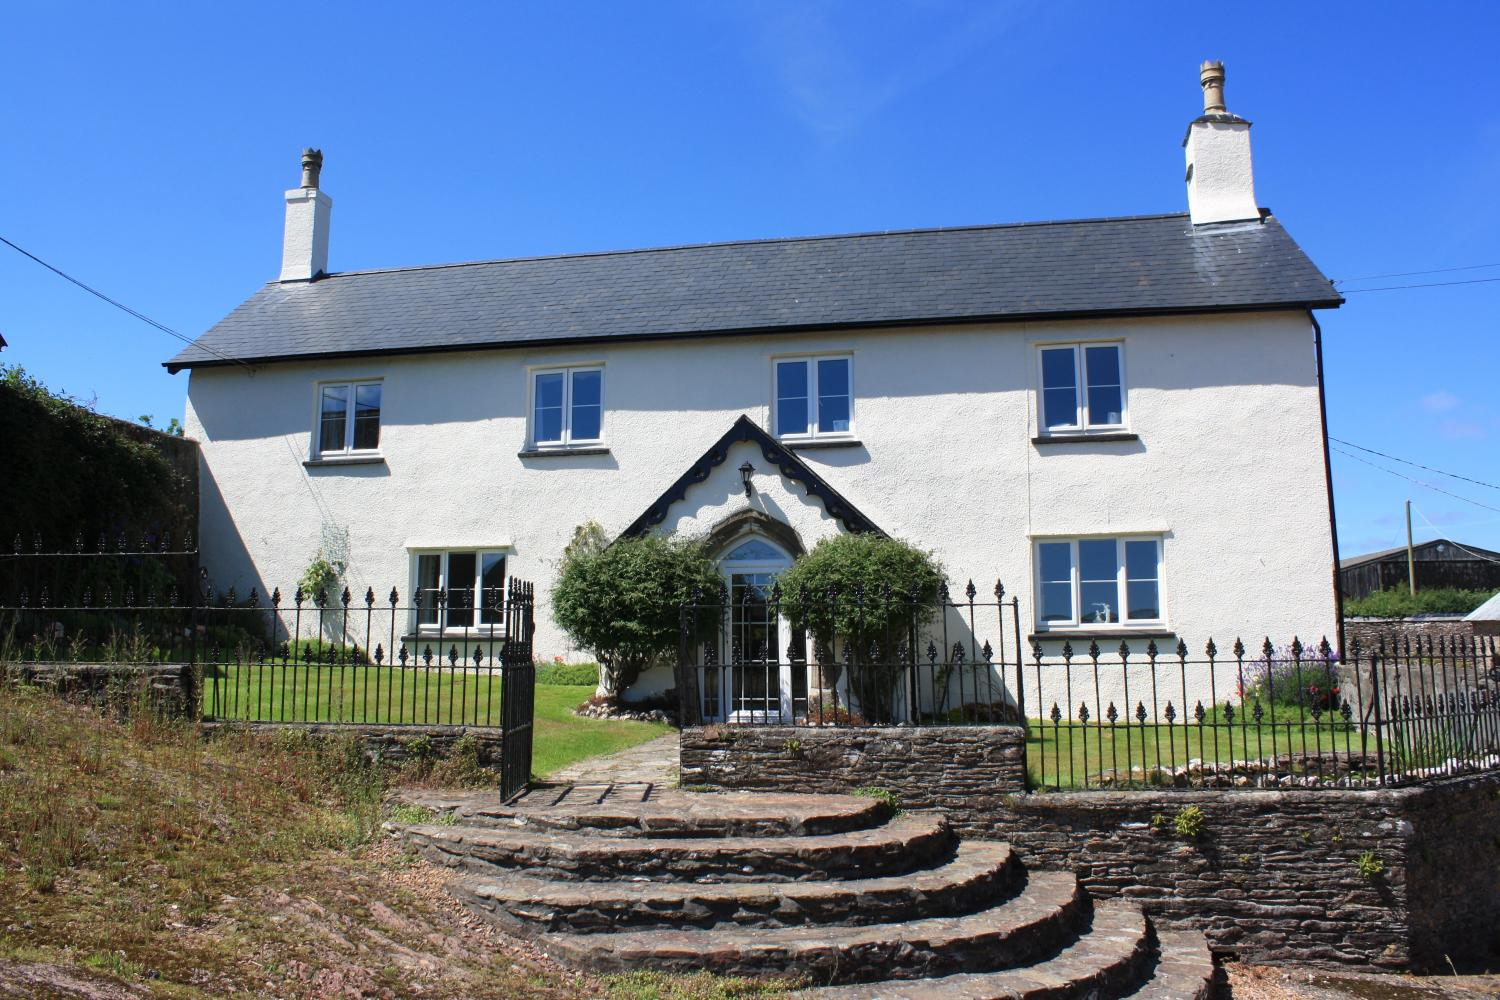 Upcott Farm House